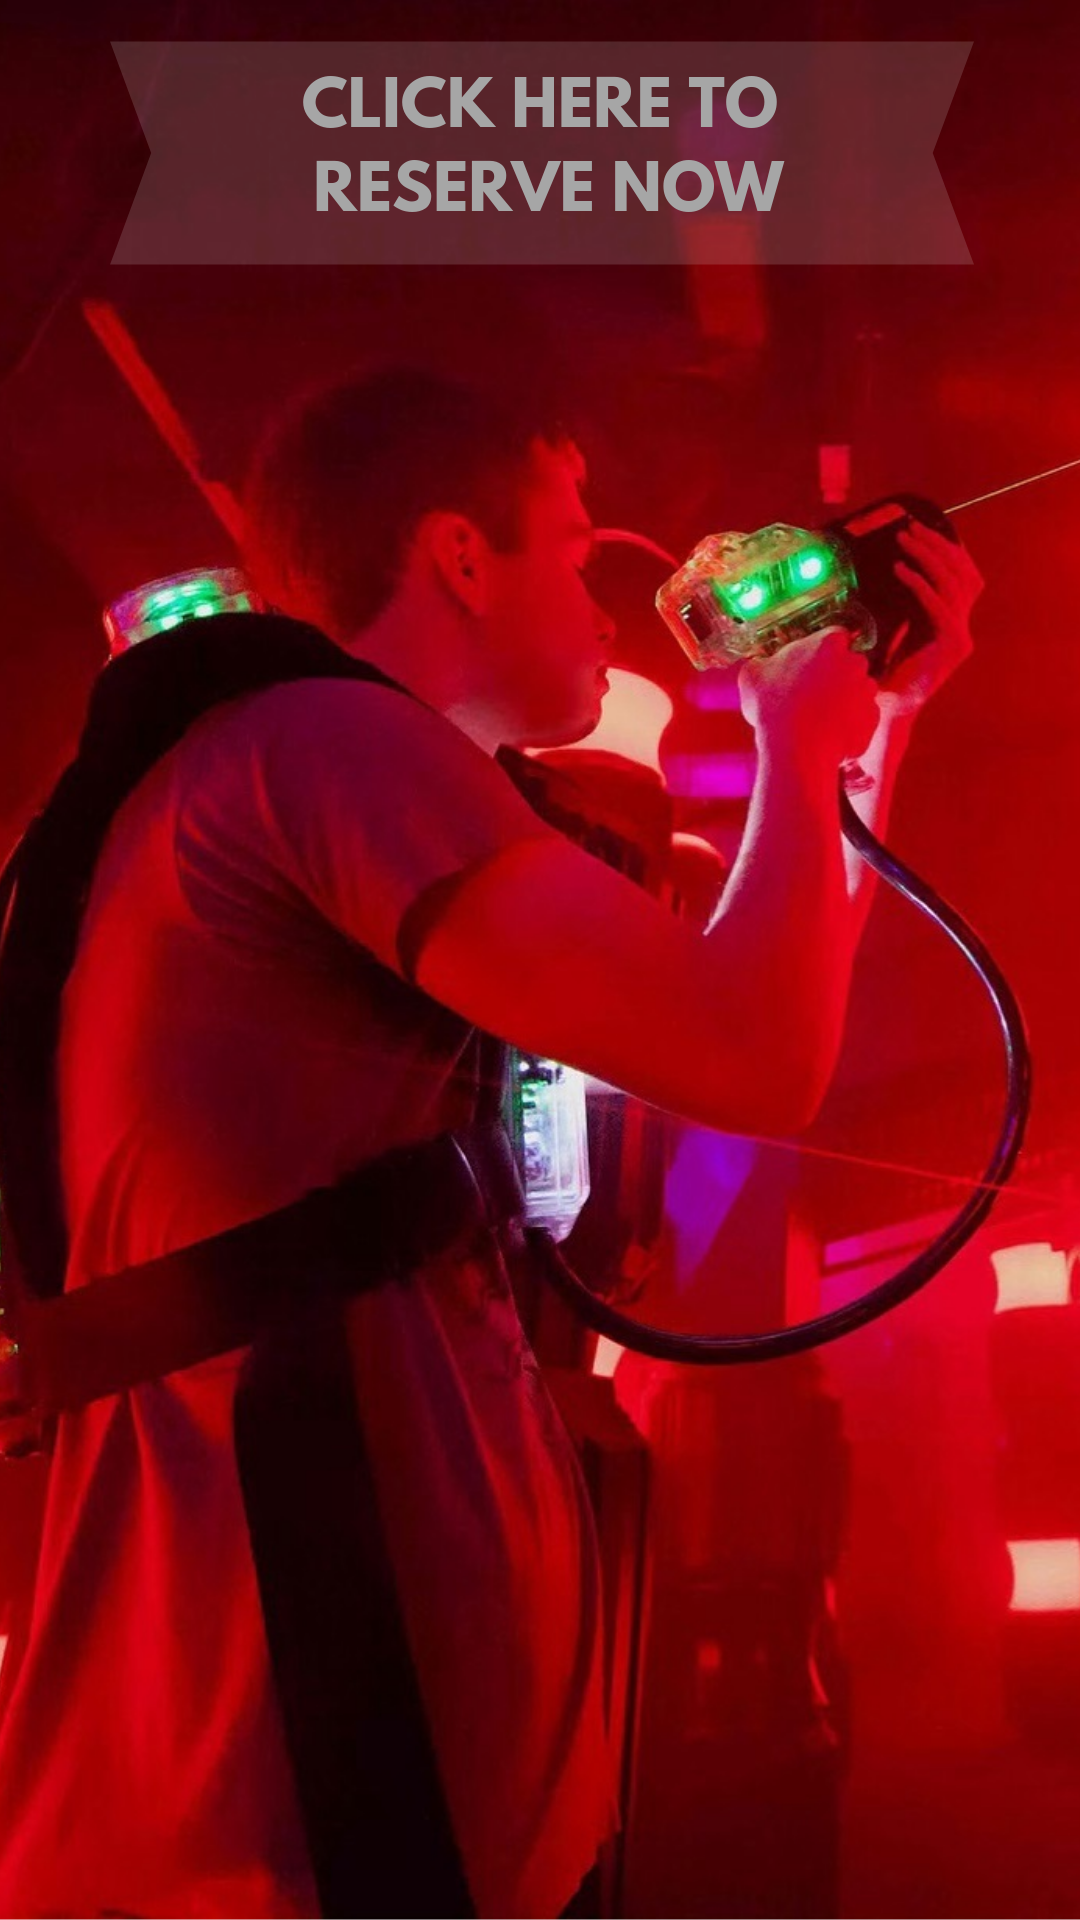 Laser tag player with red hue